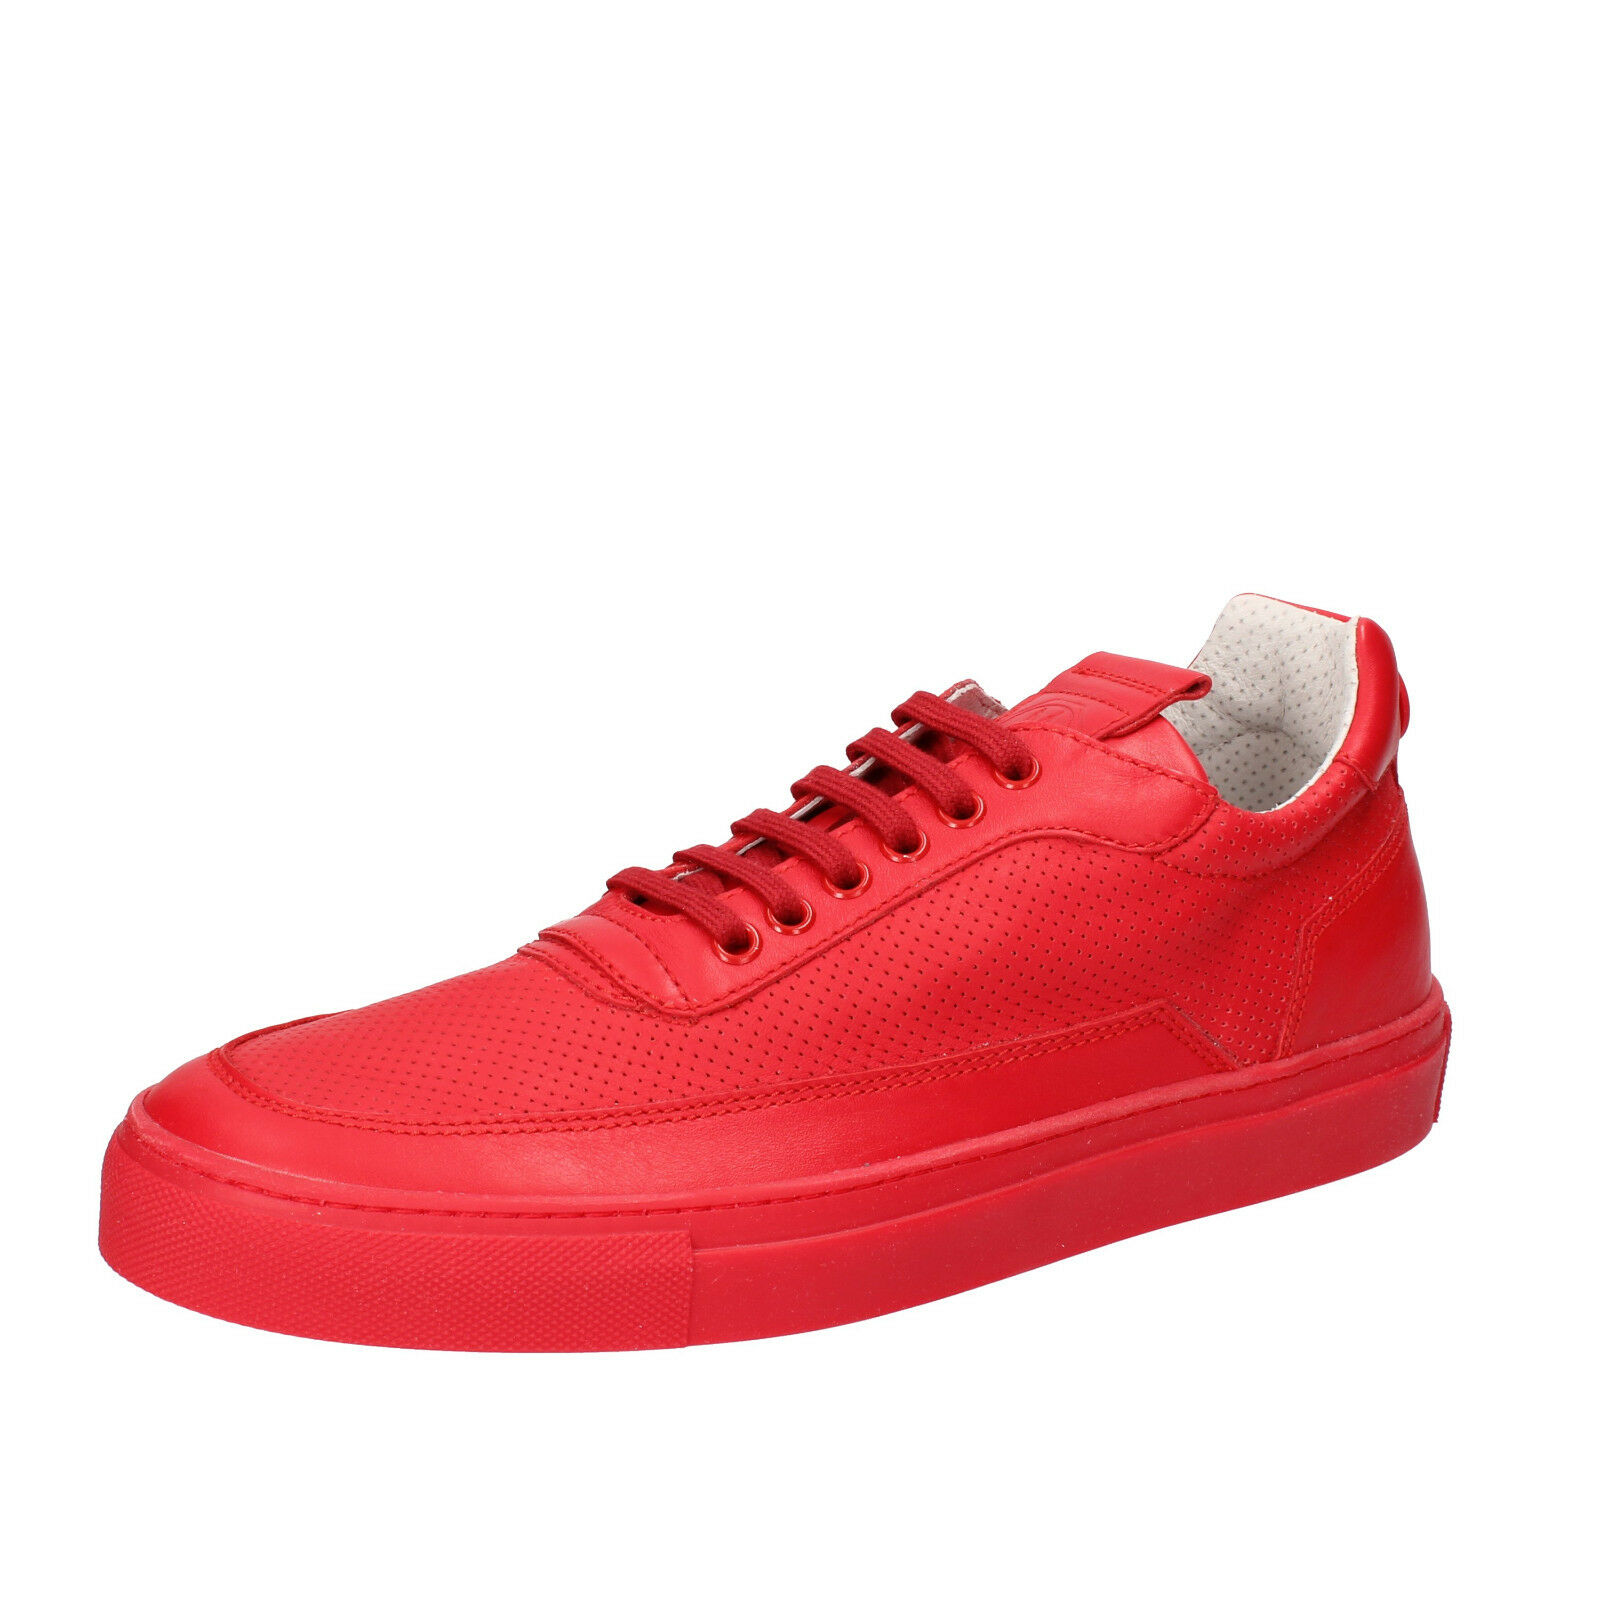 Mens shoes MARIANO DI VAIO 7 (EU 41) sneakers red leather AB776-D